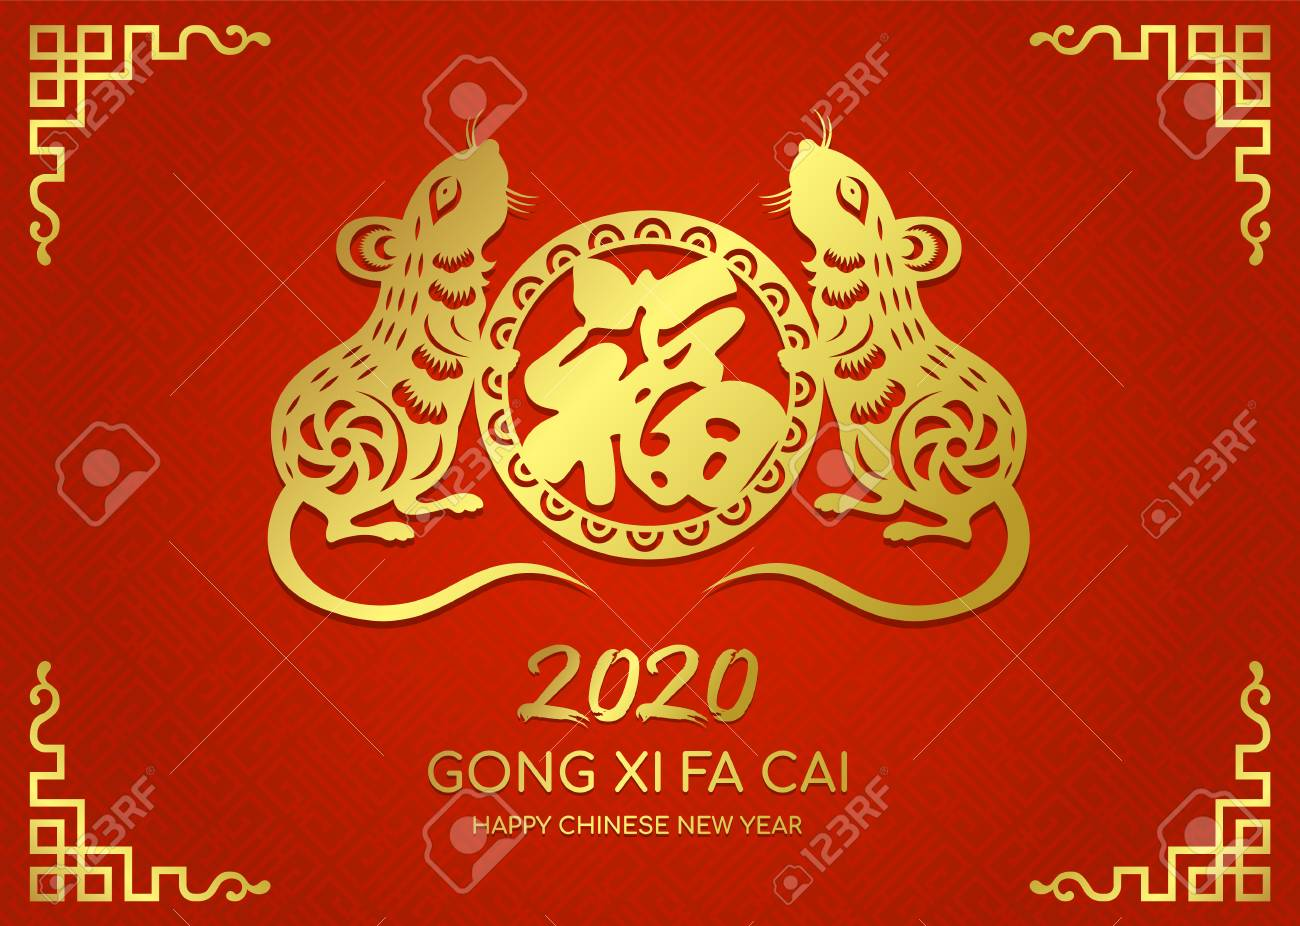 Chinese New Year 2020 Happy Chinese New Year 2020 Card With Gold Paper Cut Twin Rat